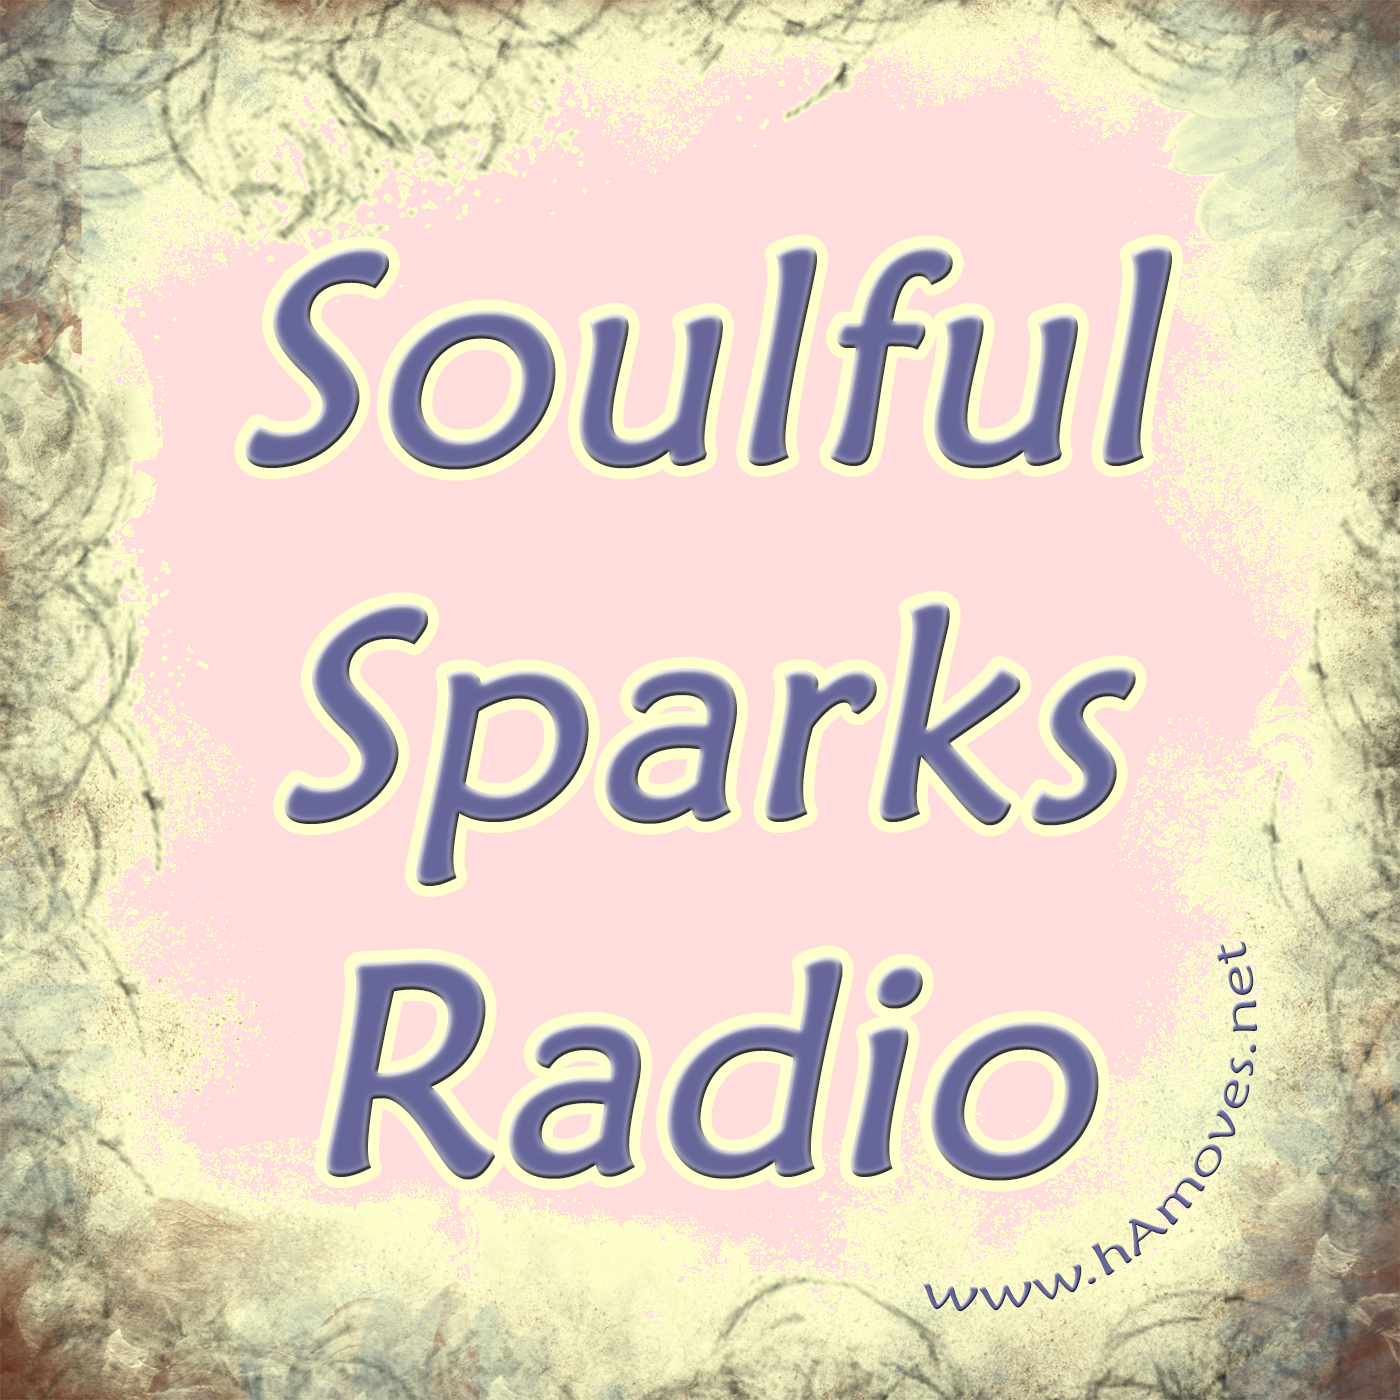 Soulful Sparks Radio… every Sunday at 9 pm EST...